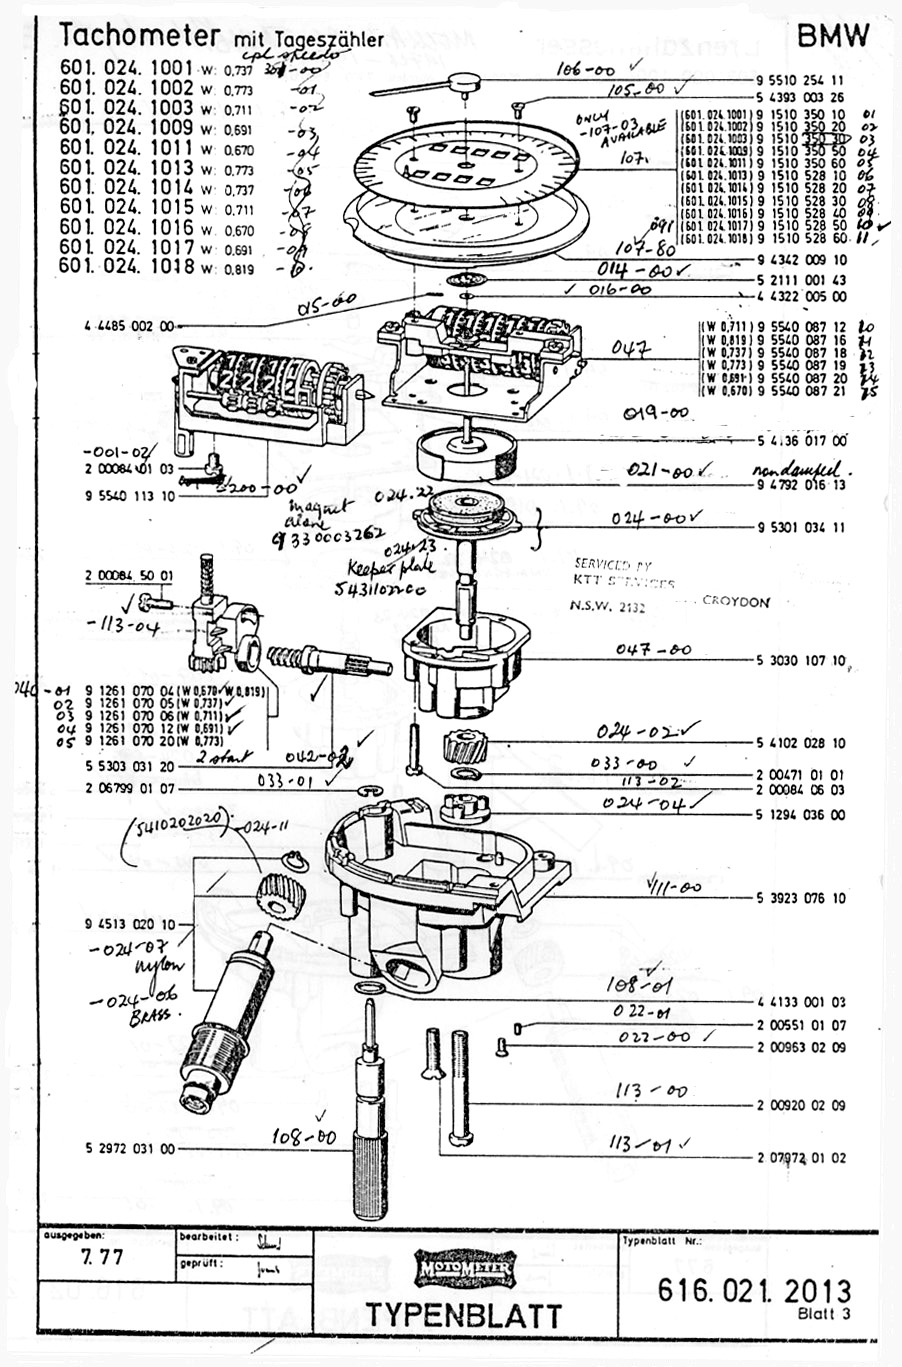 bmw r100rs wiring diagram  bmw  auto wiring diagram